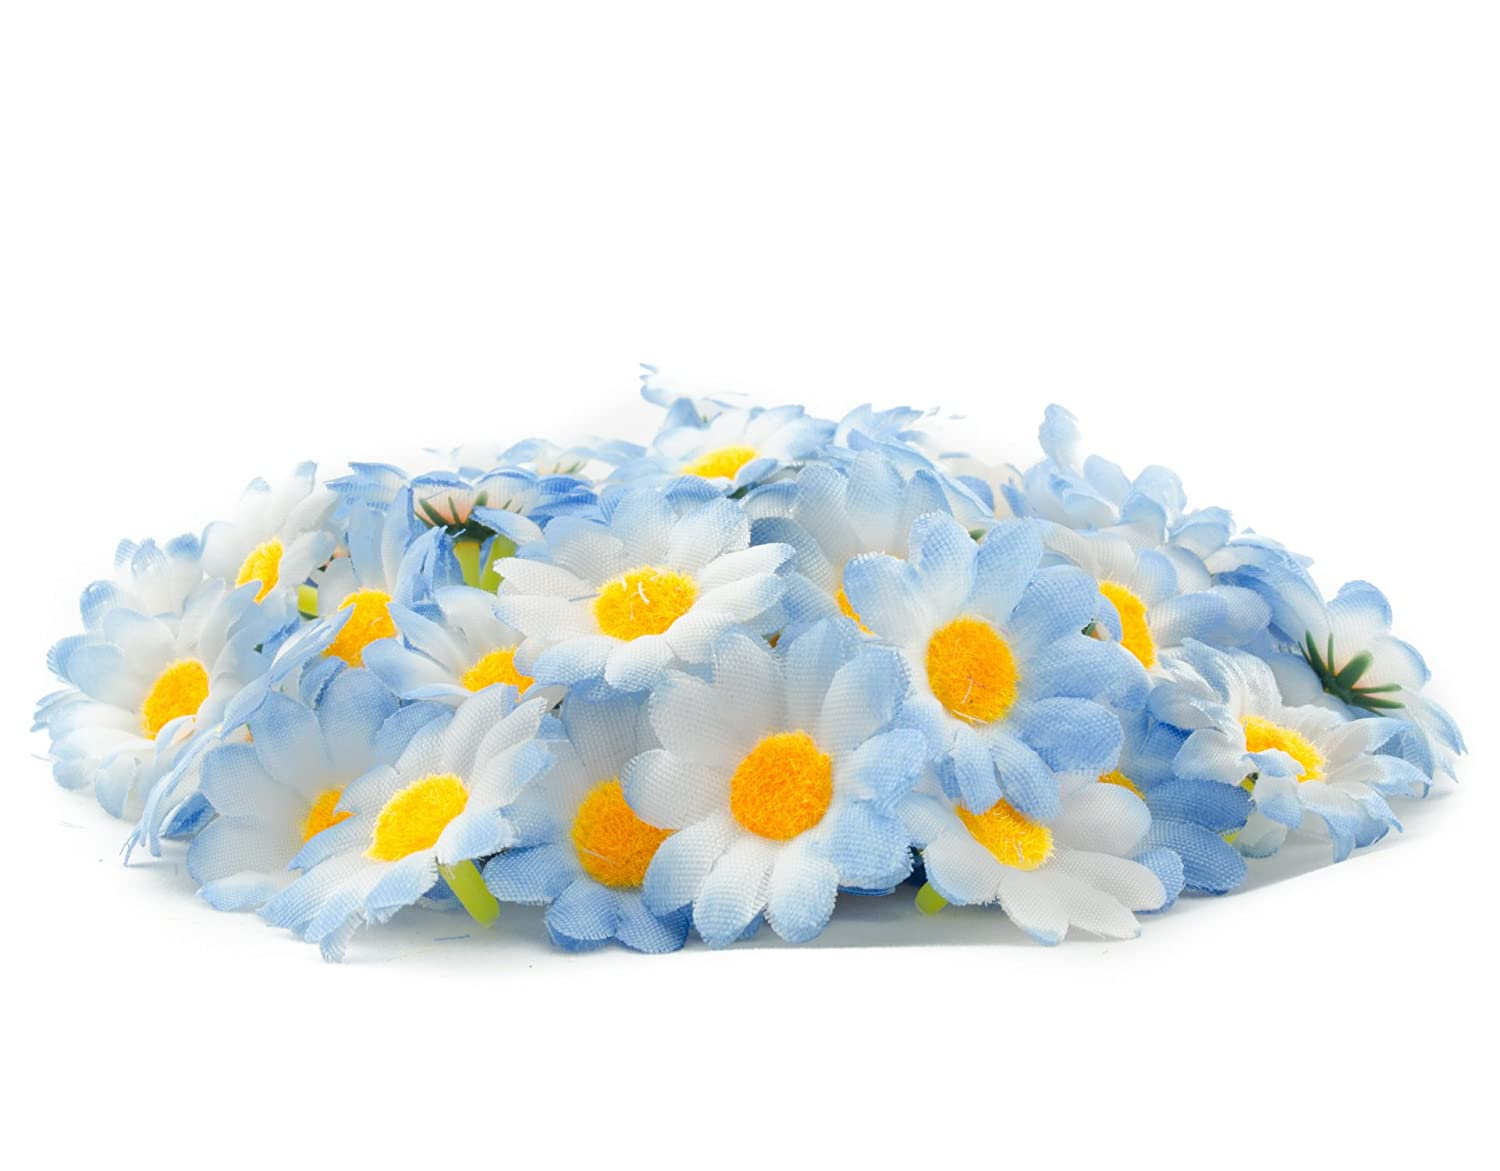 Approx 100pcs Artificial Gerbera Daisy Silk Flowers Heads For Diy